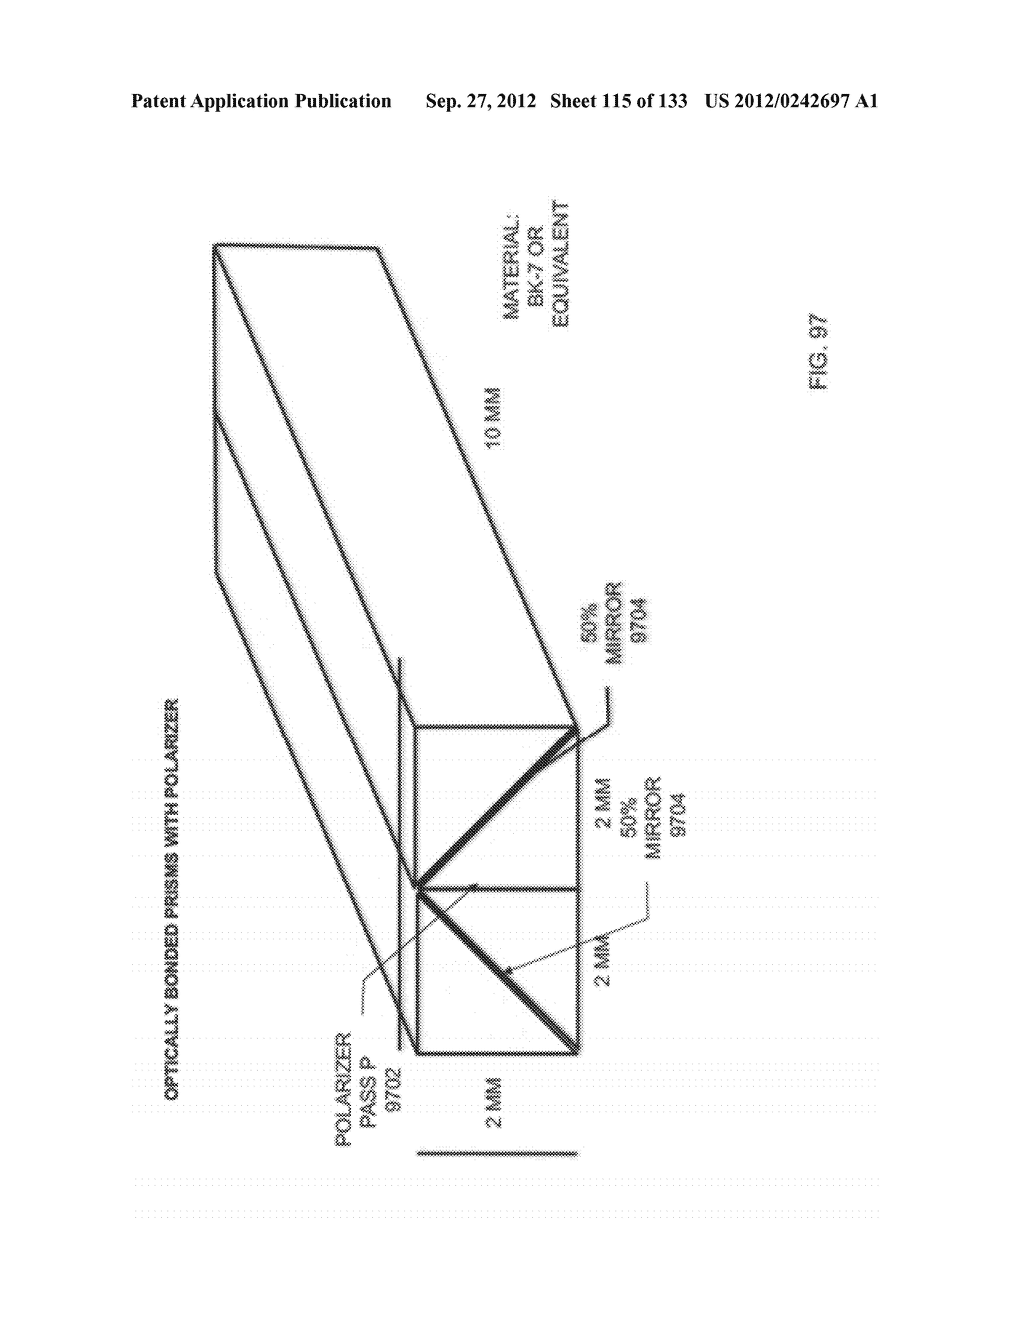 SEE-THROUGH NEAR-EYE DISPLAY GLASSES WITH THE OPTICAL ASSEMBLY INCLUDING     ABSORPTIVE POLARIZERS OR ANTI-REFLECTIVE COATINGS TO REDUCE STRAY LIGHT - diagram, schematic, and image 116